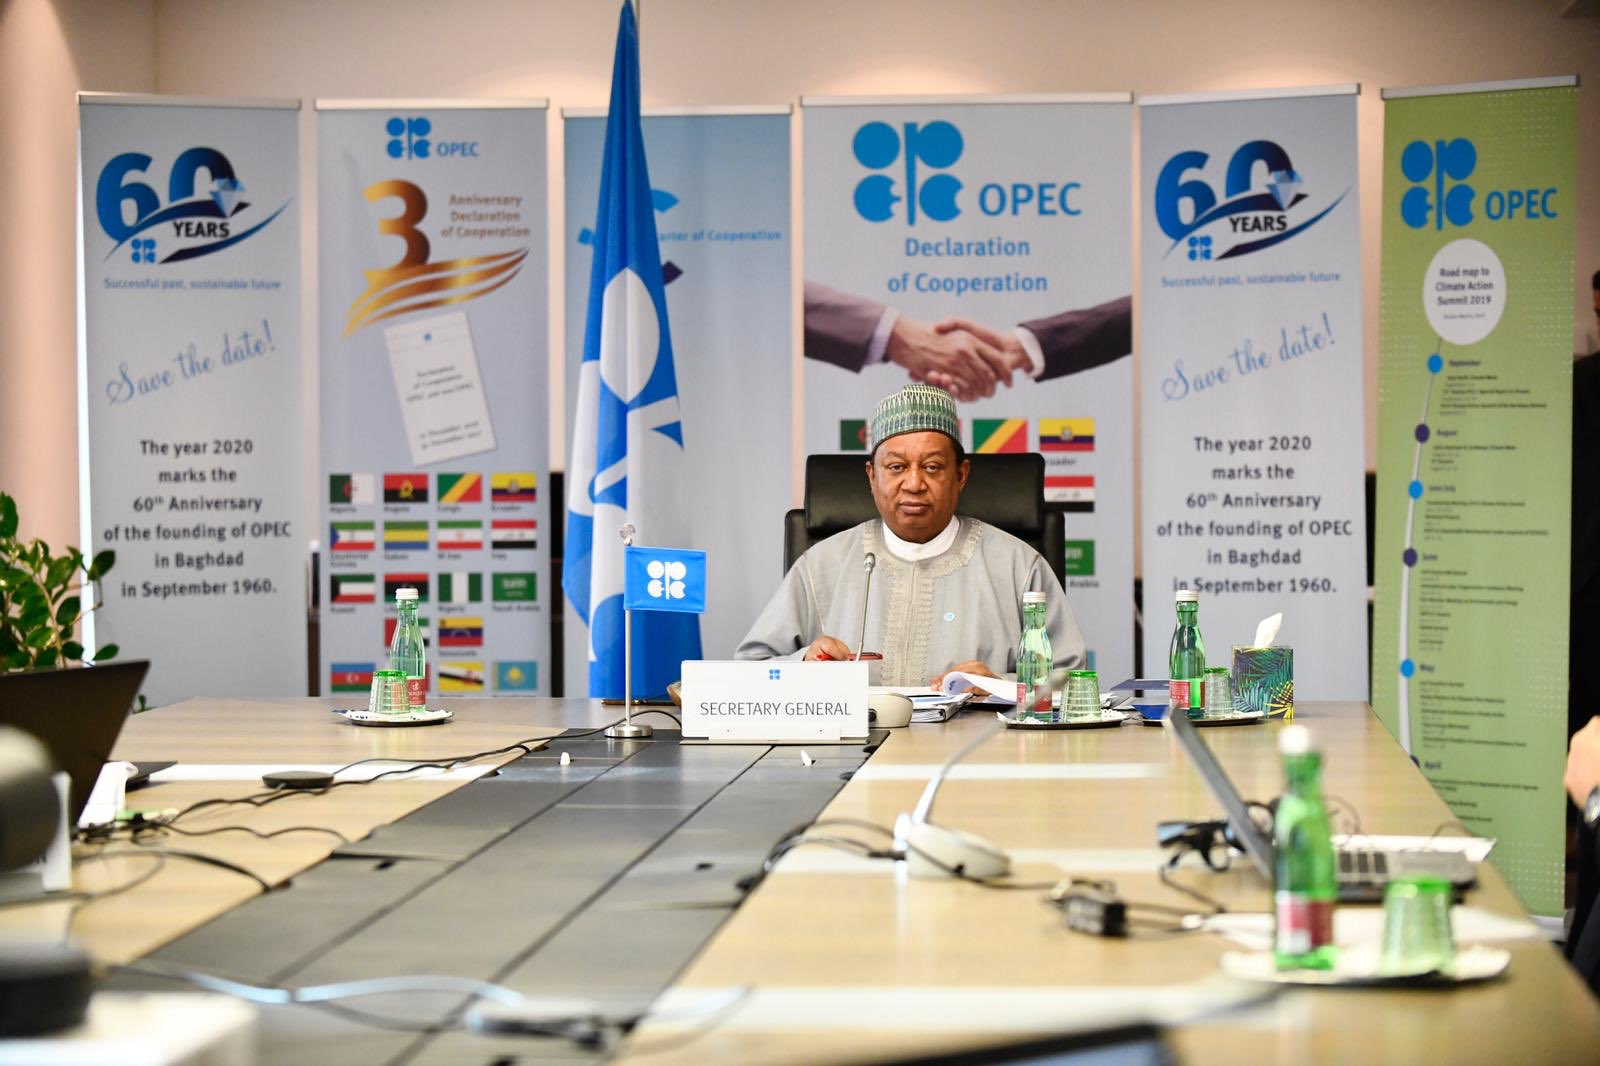 'Good news for Africa oil market' as OPEC+ slashes 20Mb daily production